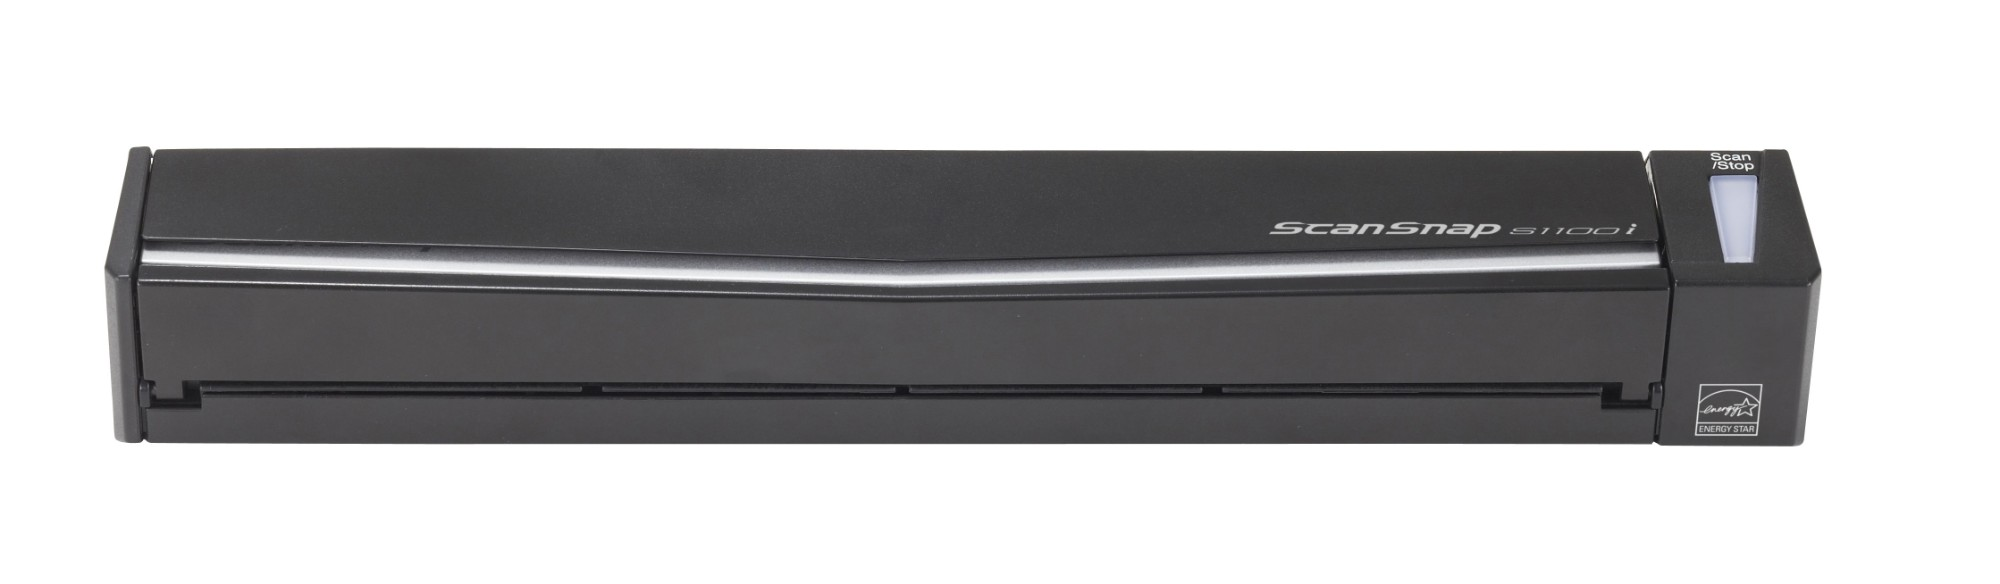 Fujitsu ScanSnap S1100i CDF + Sheet-fed scanner 600 x 600DPI A4 Black